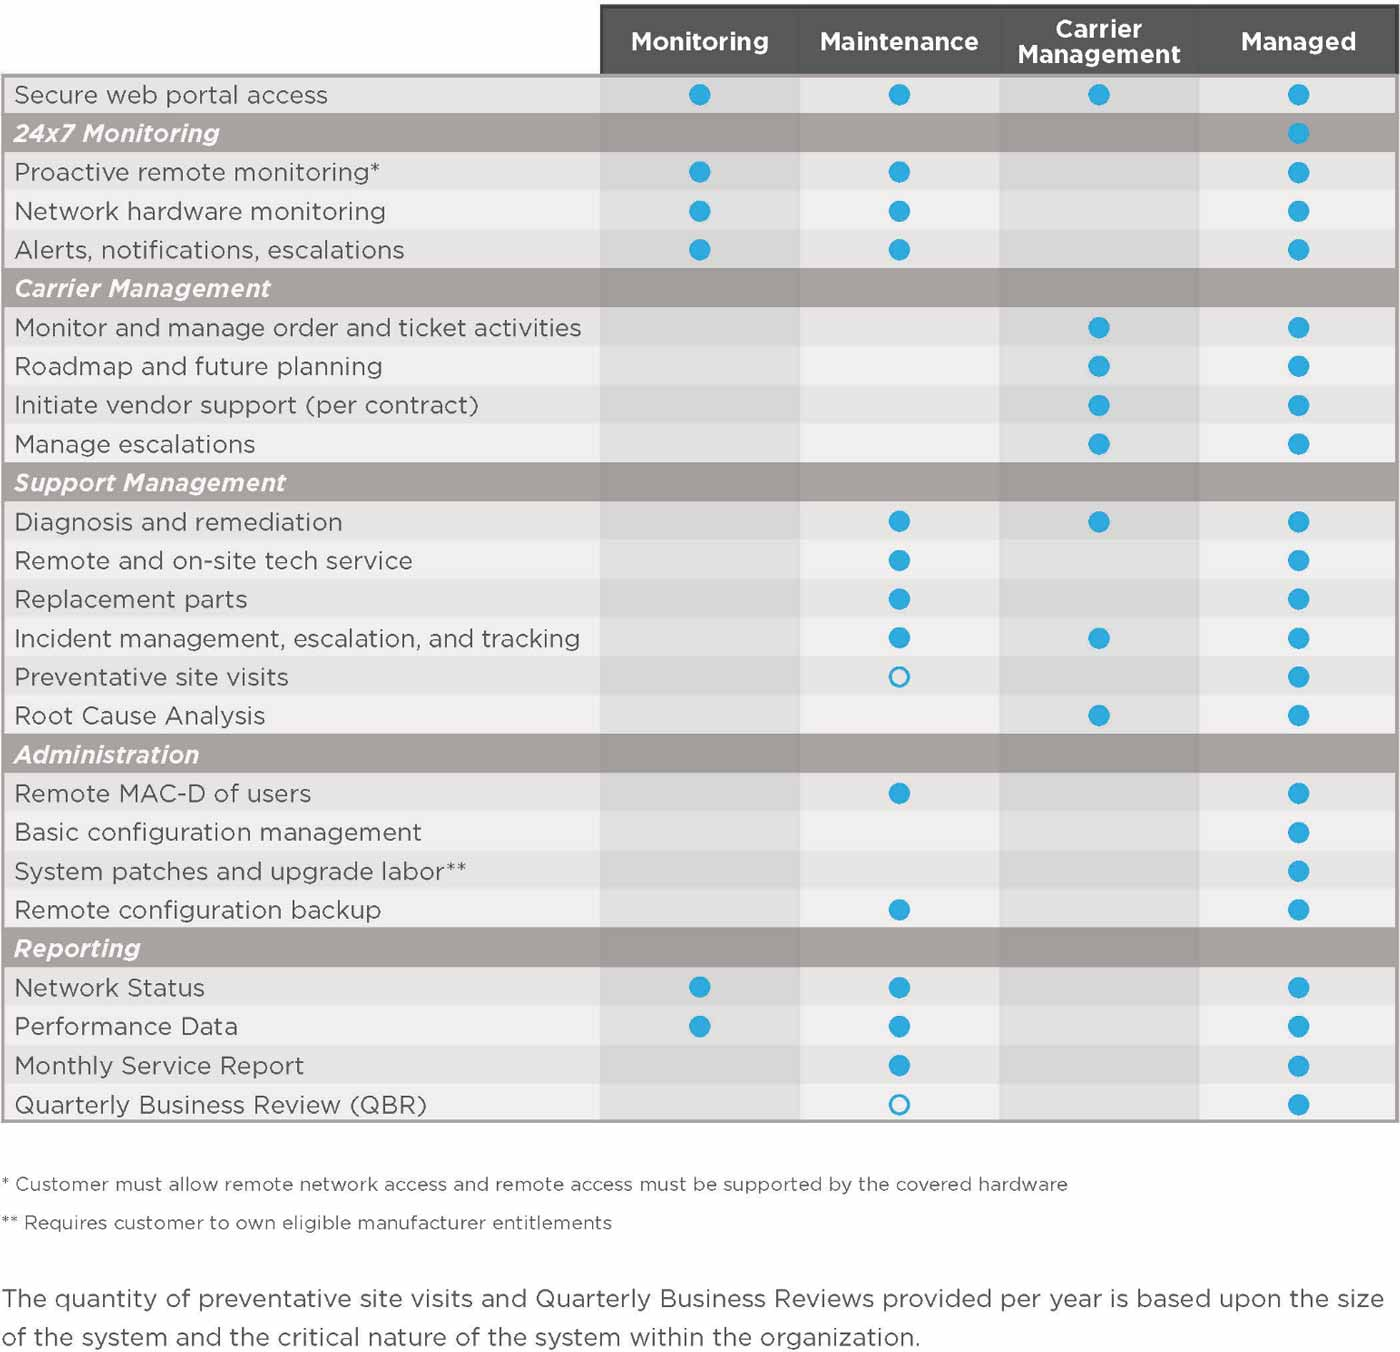 image of managed services support matrix